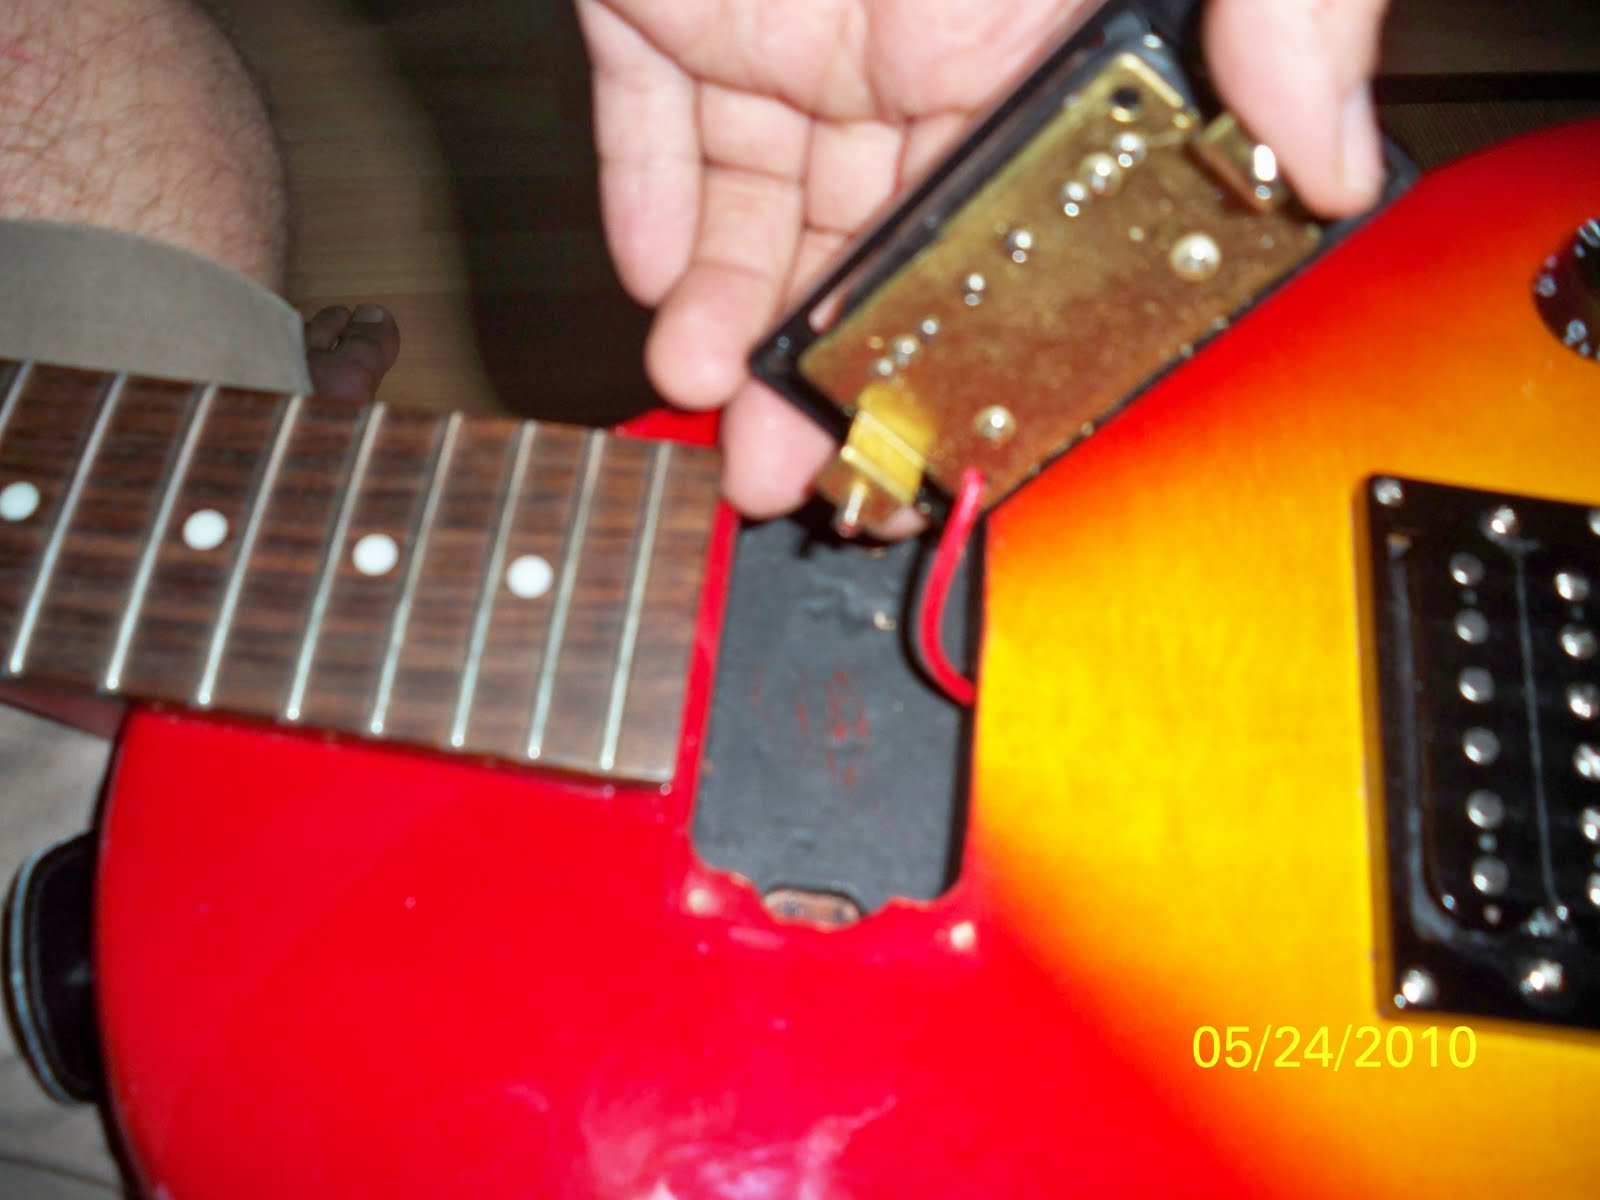 Epiphone Les Paul Special 2 Wiring Guide And Troubleshooting Of Guitar Diagram 2010 By Gibson Dpc Diy The Epic Re A Ii Rh Dpcdiyguitar Blogspot Com Standard